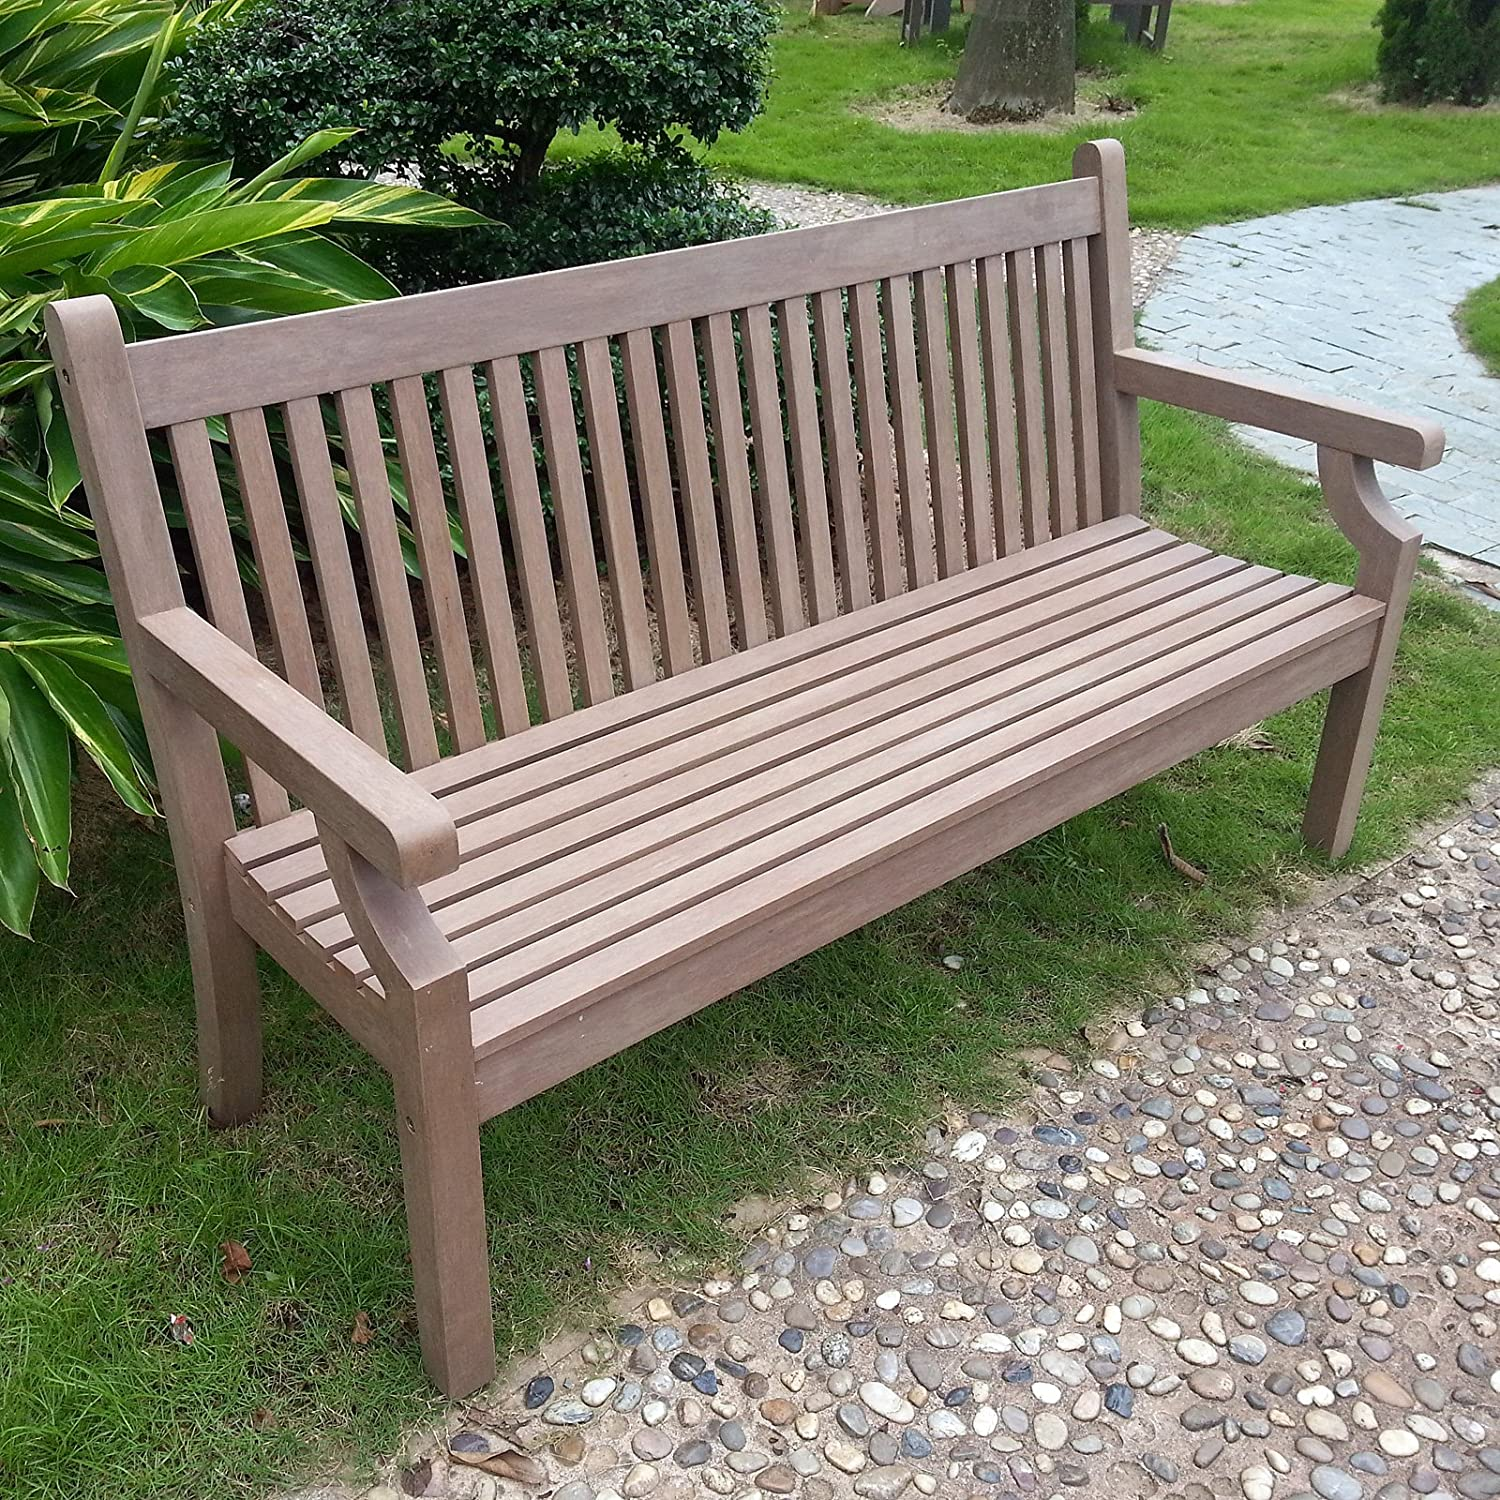 revamp how bench garden finding to for speedy buy help bespoke chunky plastic plans furniture chairs on